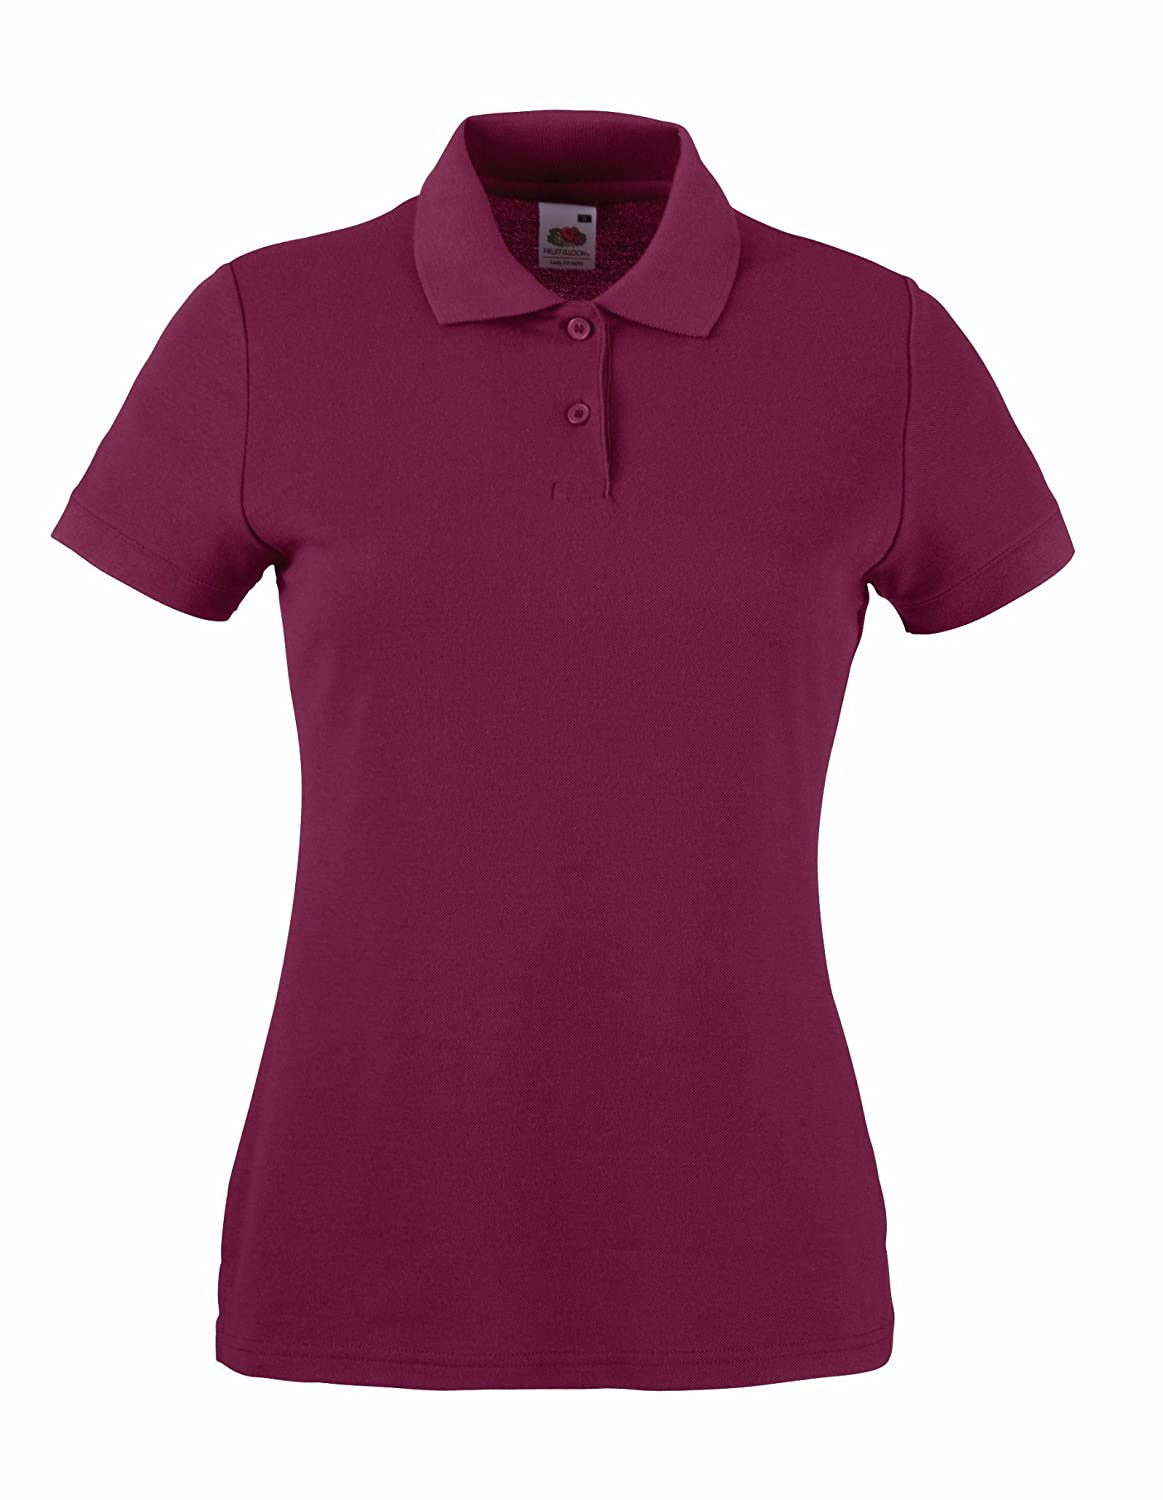 Fruit of the Loom Womens Lady Fit Pique Polo Shirt